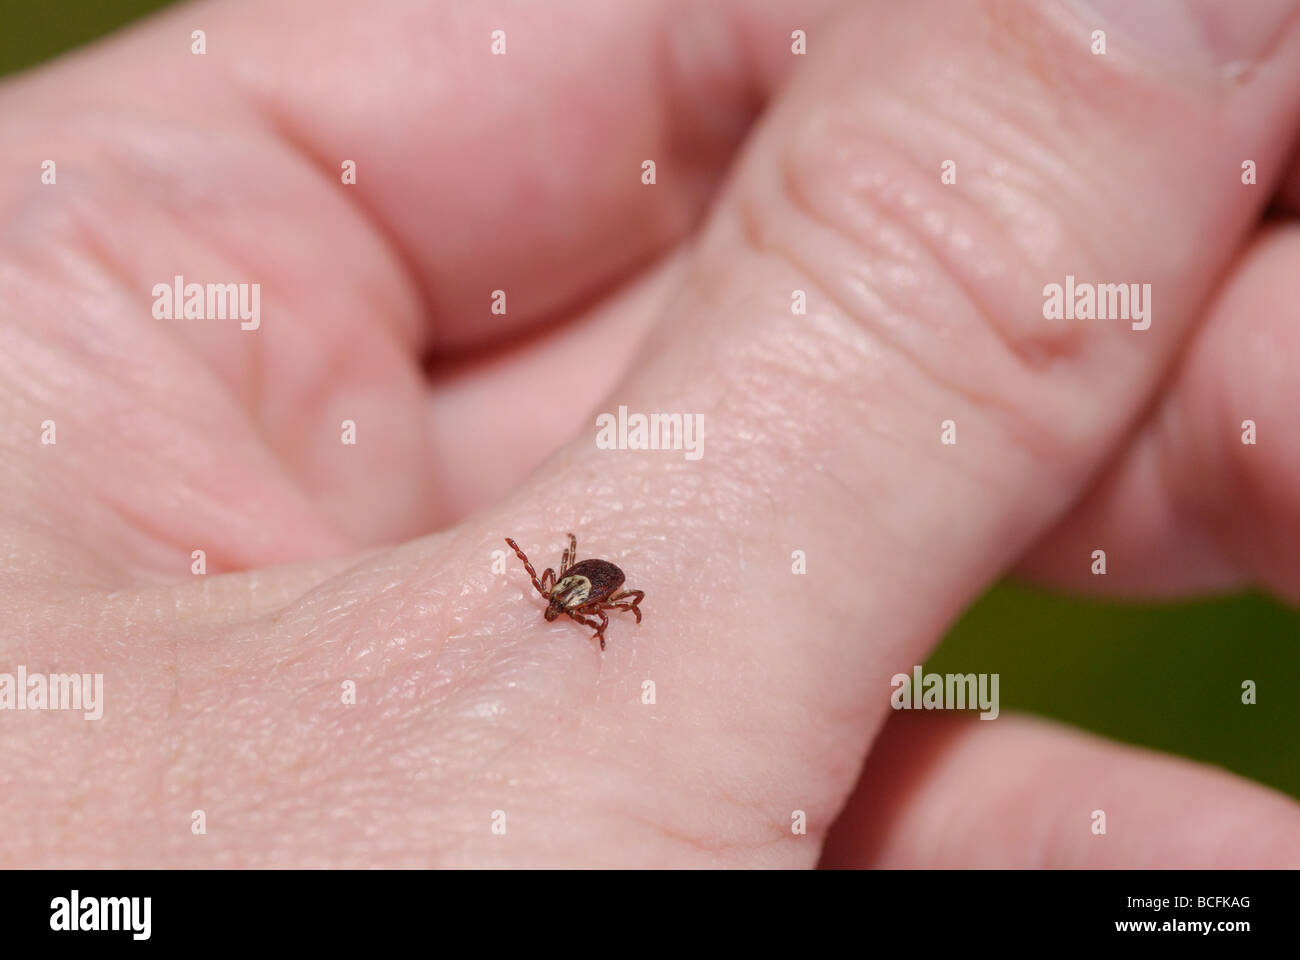 Female American dog tick Dermacentor variabilis also known as the wood tick It is on a person s hand - Stock Image